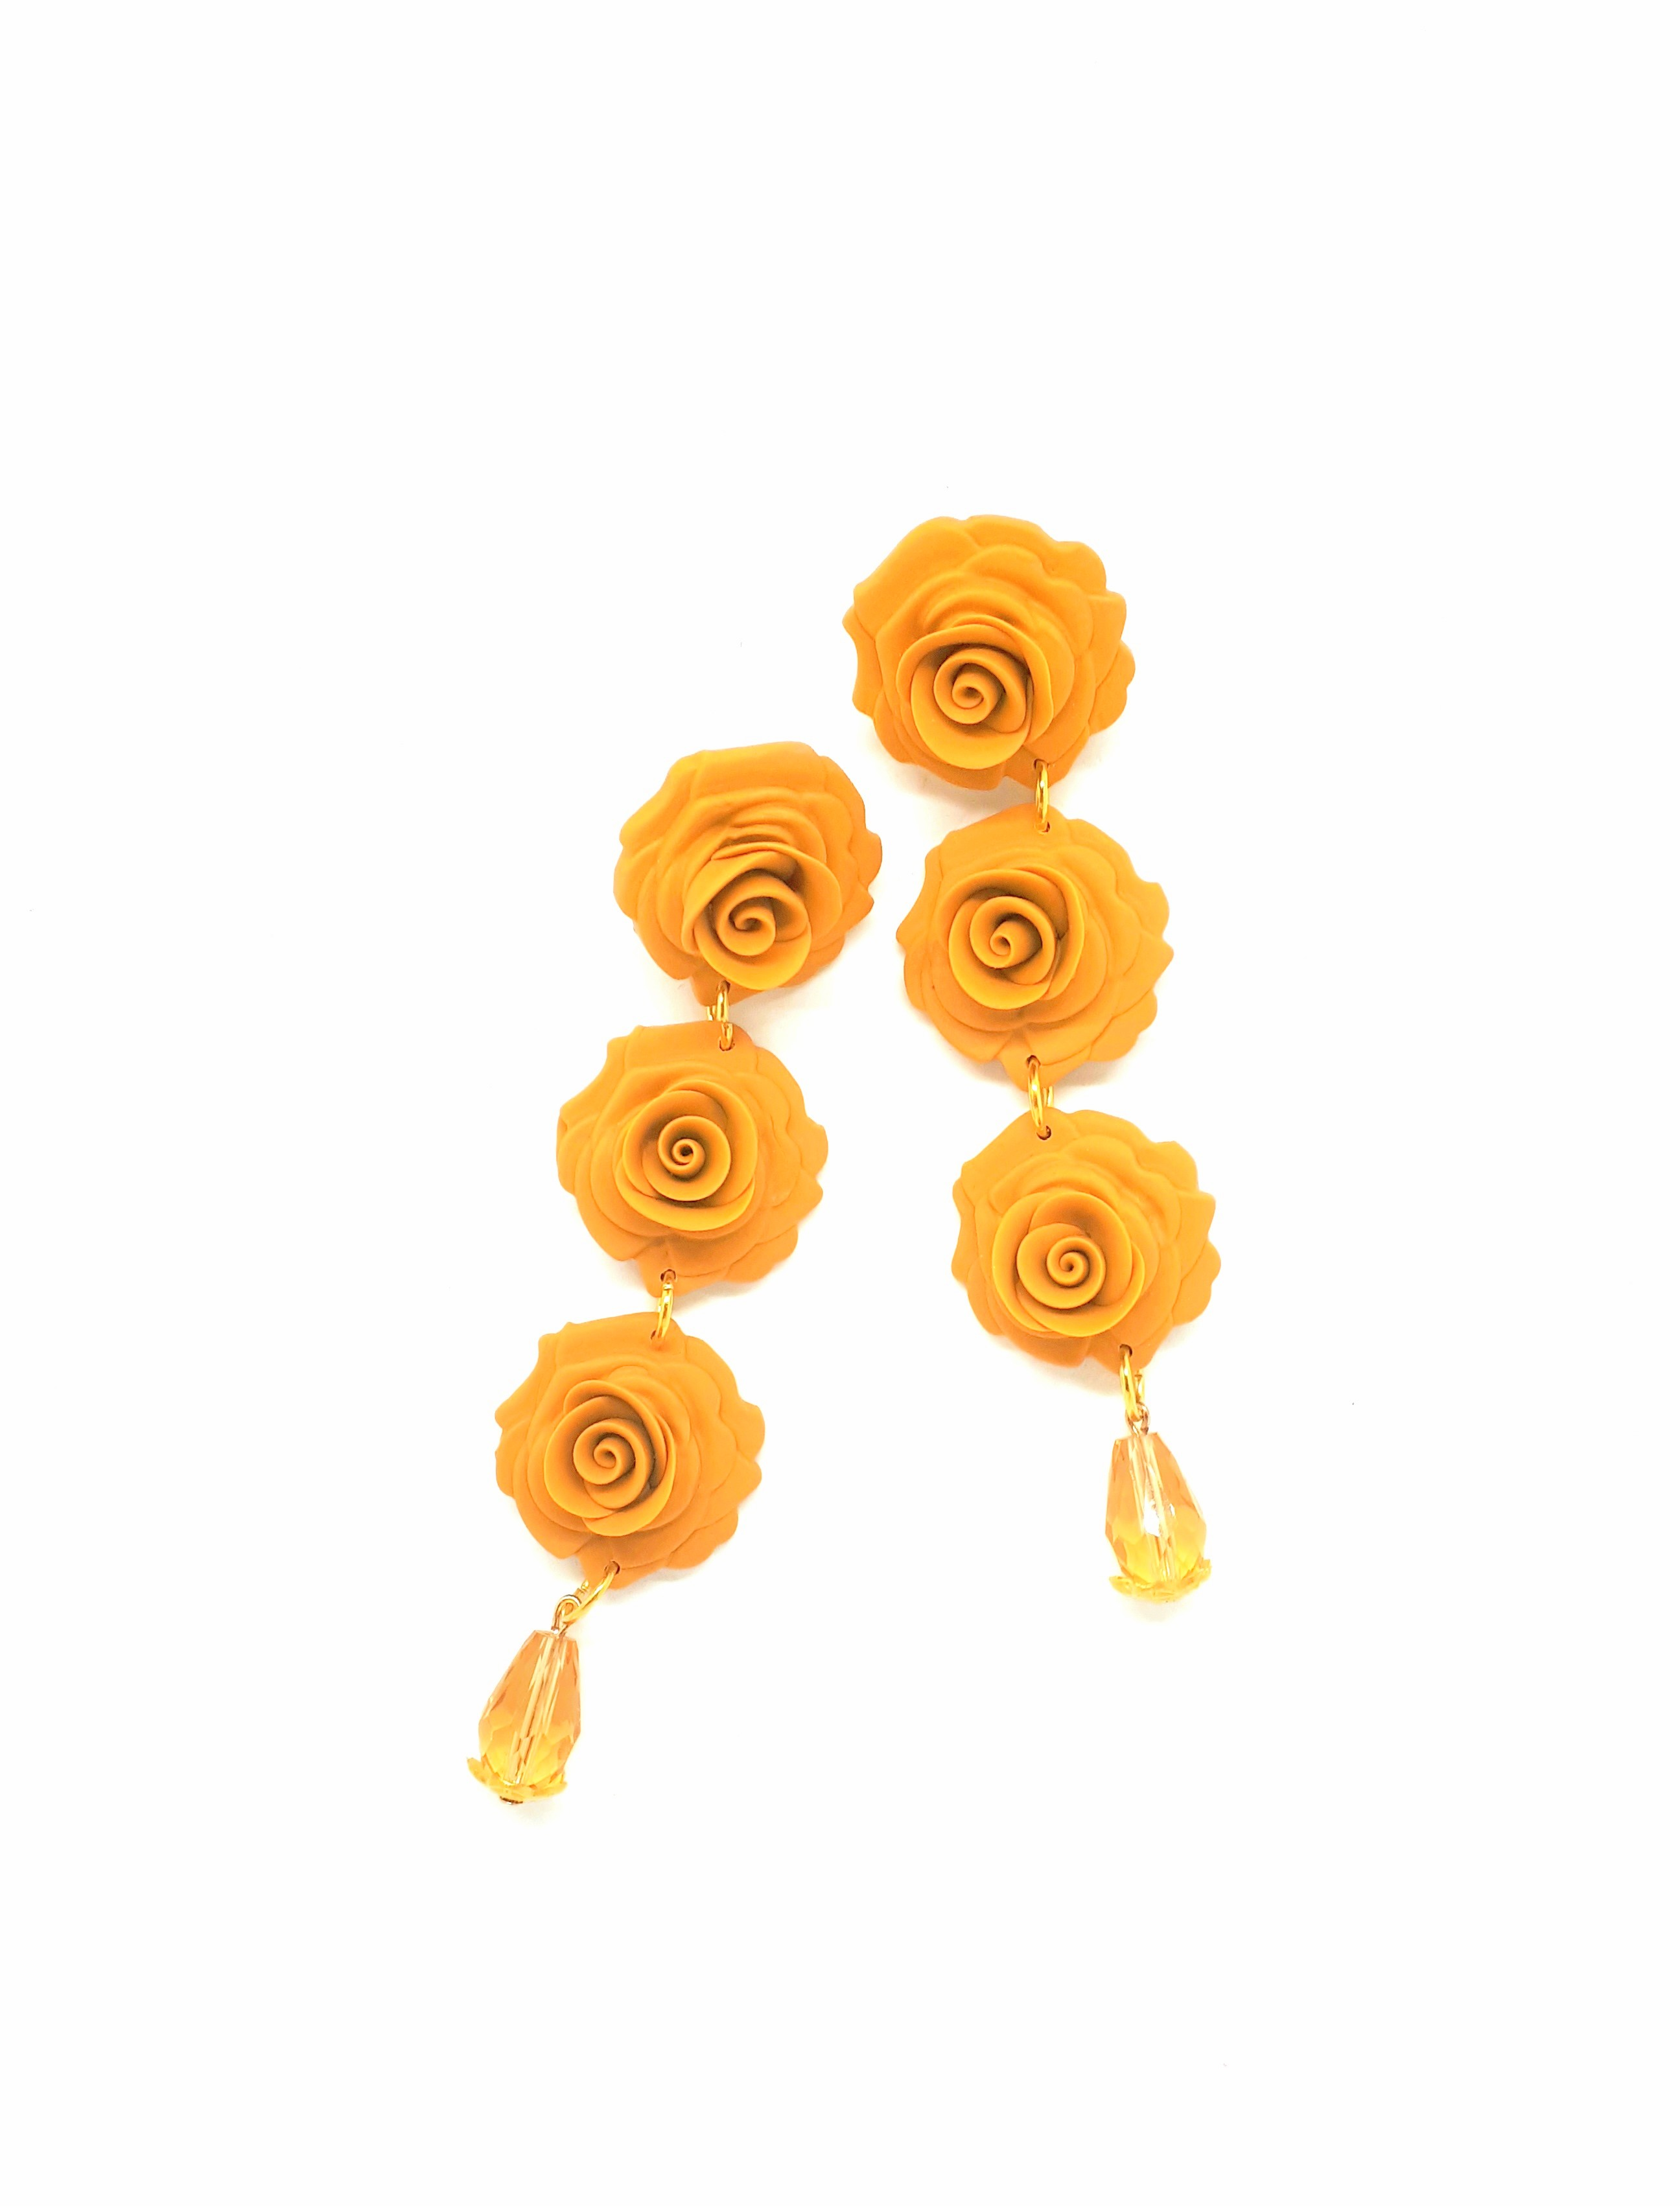 3 roses long statement earrings